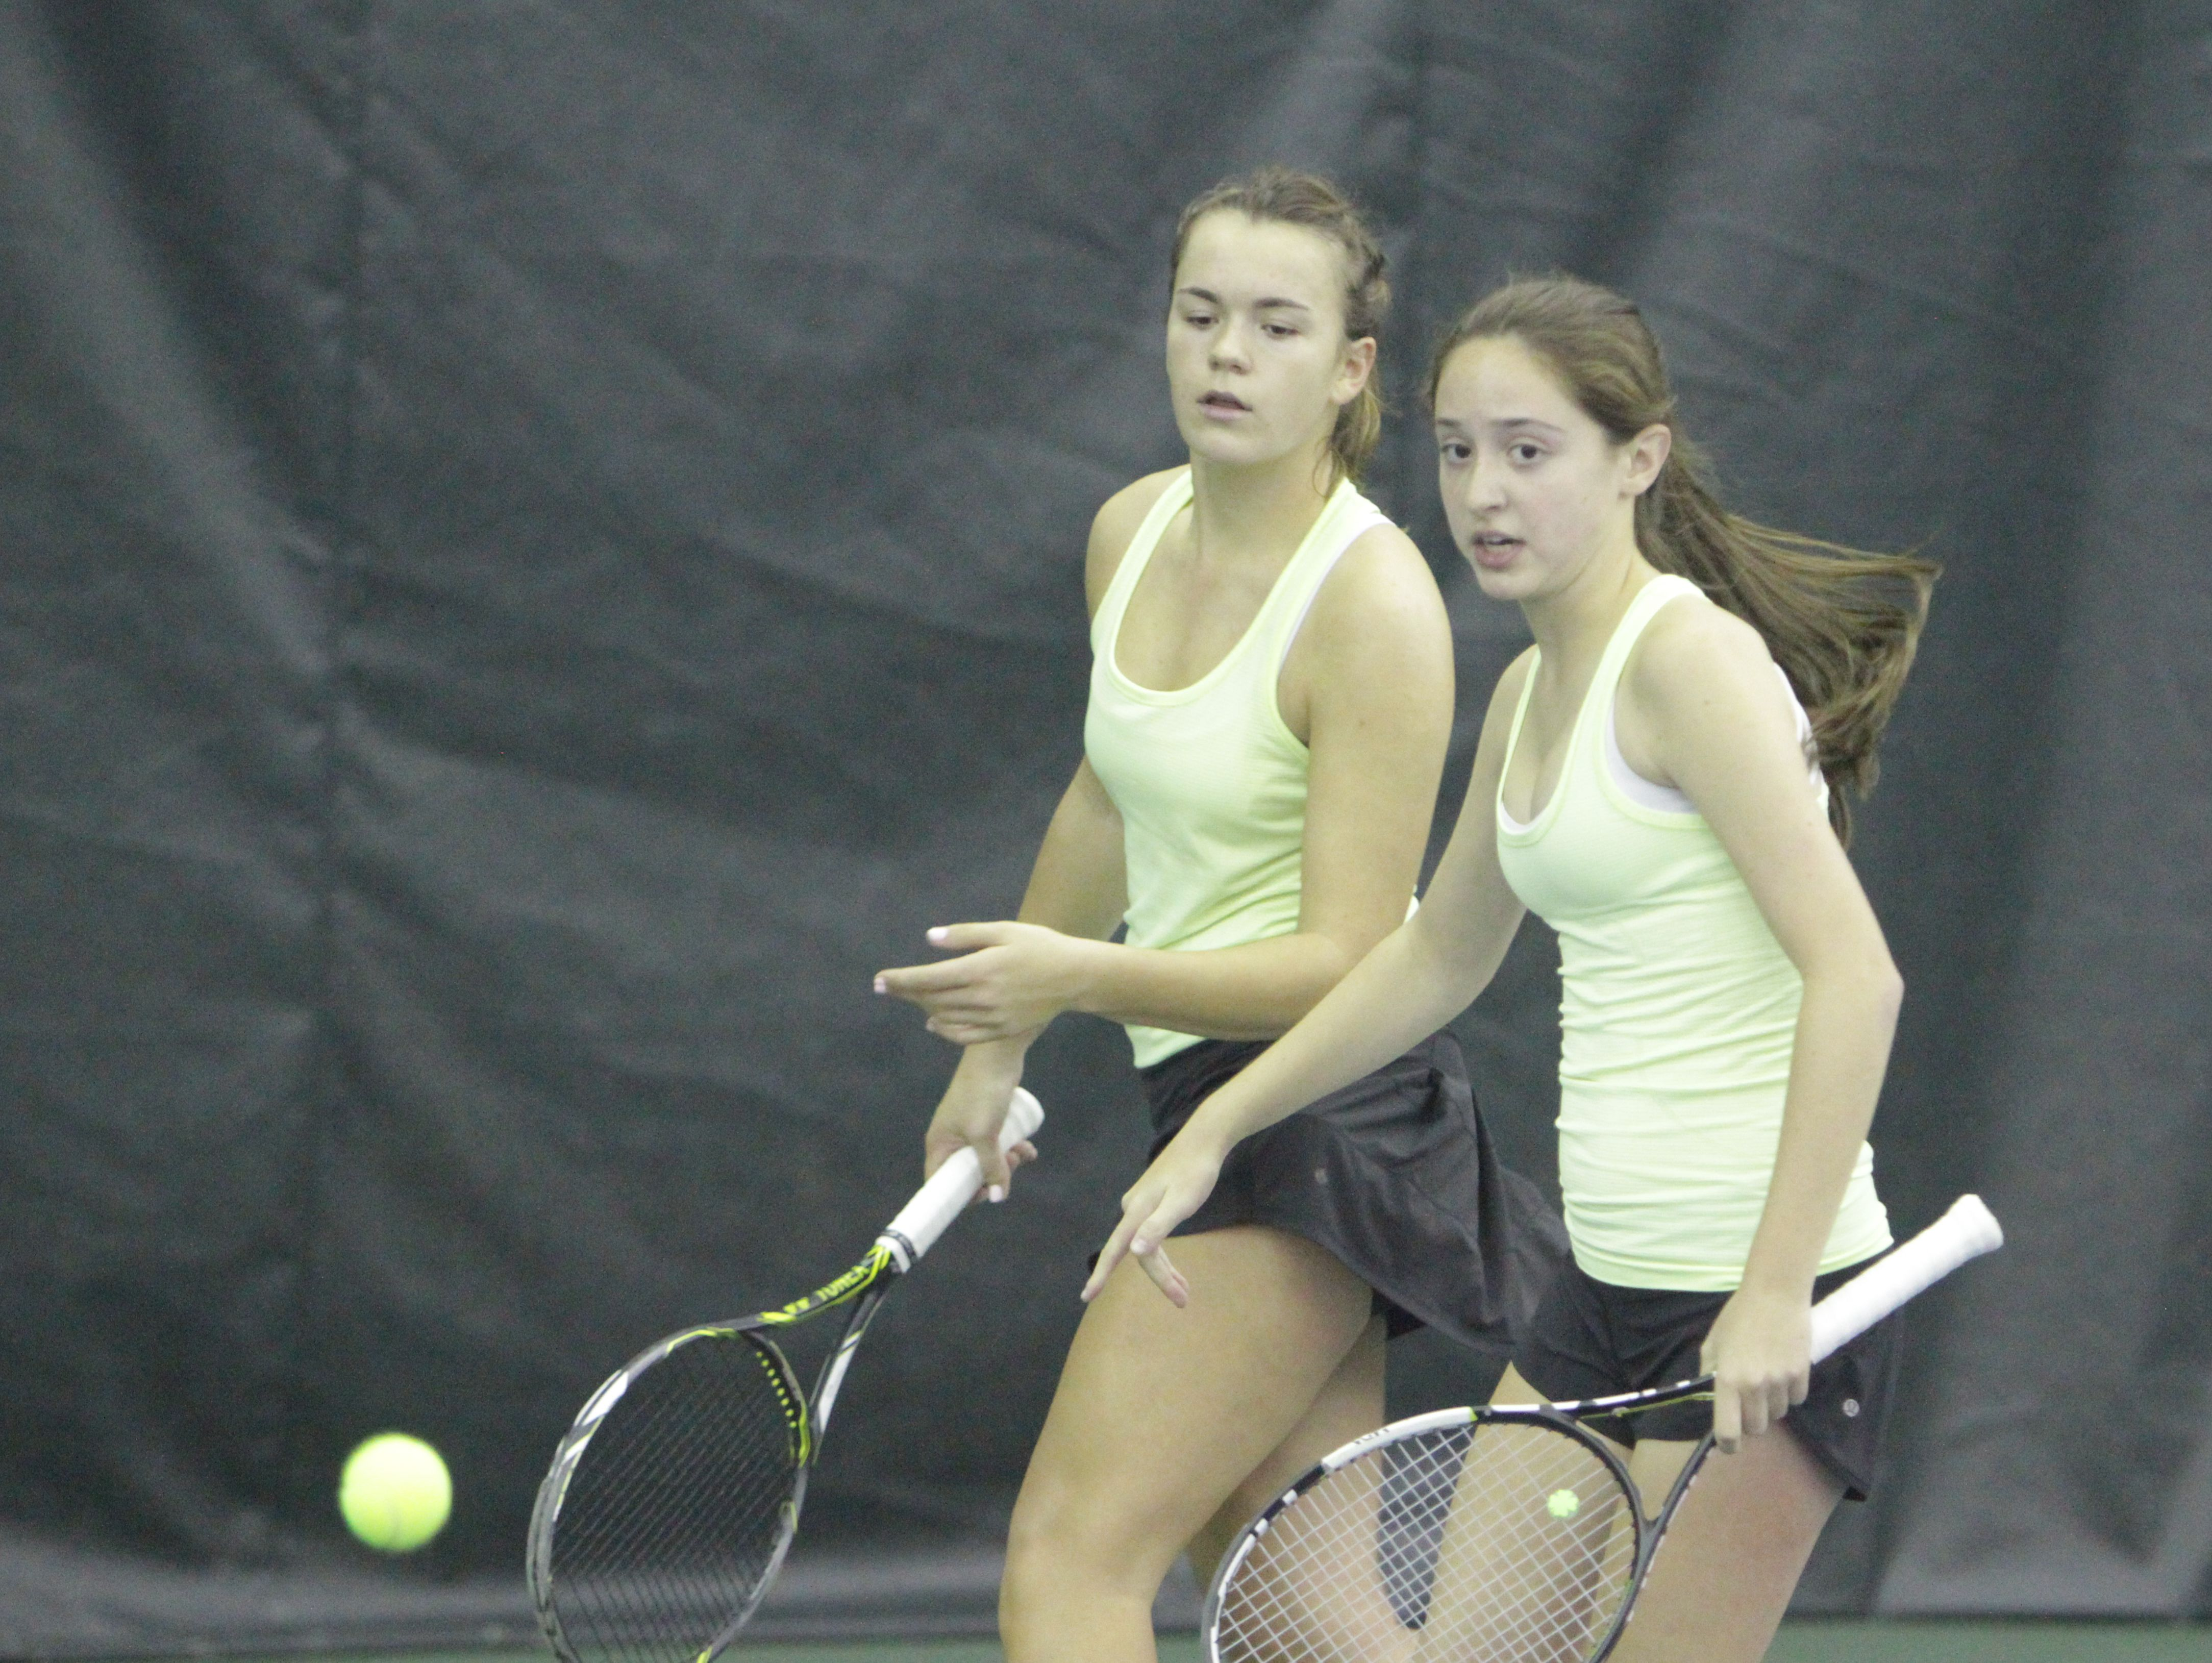 Clarkstown North's Martyna Czarnik (left) and Sydney Miller between points during a quarterfinal match at the New York State girls tennis tournament at Sound Shore Indoor Tennis in Port Chester on Sunday, Oct. 30th, 2016.